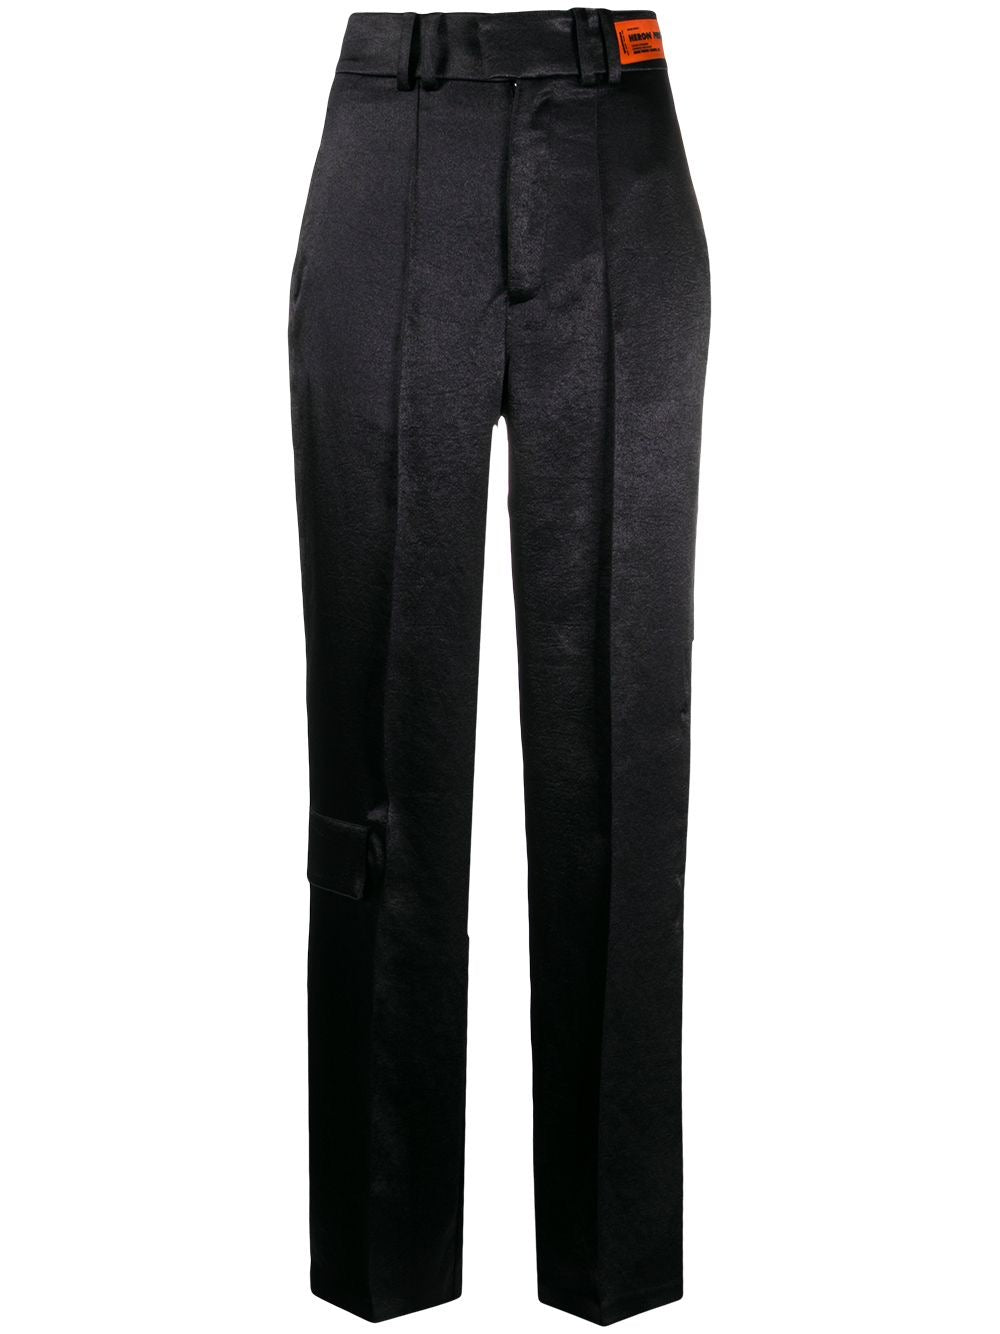 Black Straight Leg Satin Trousers